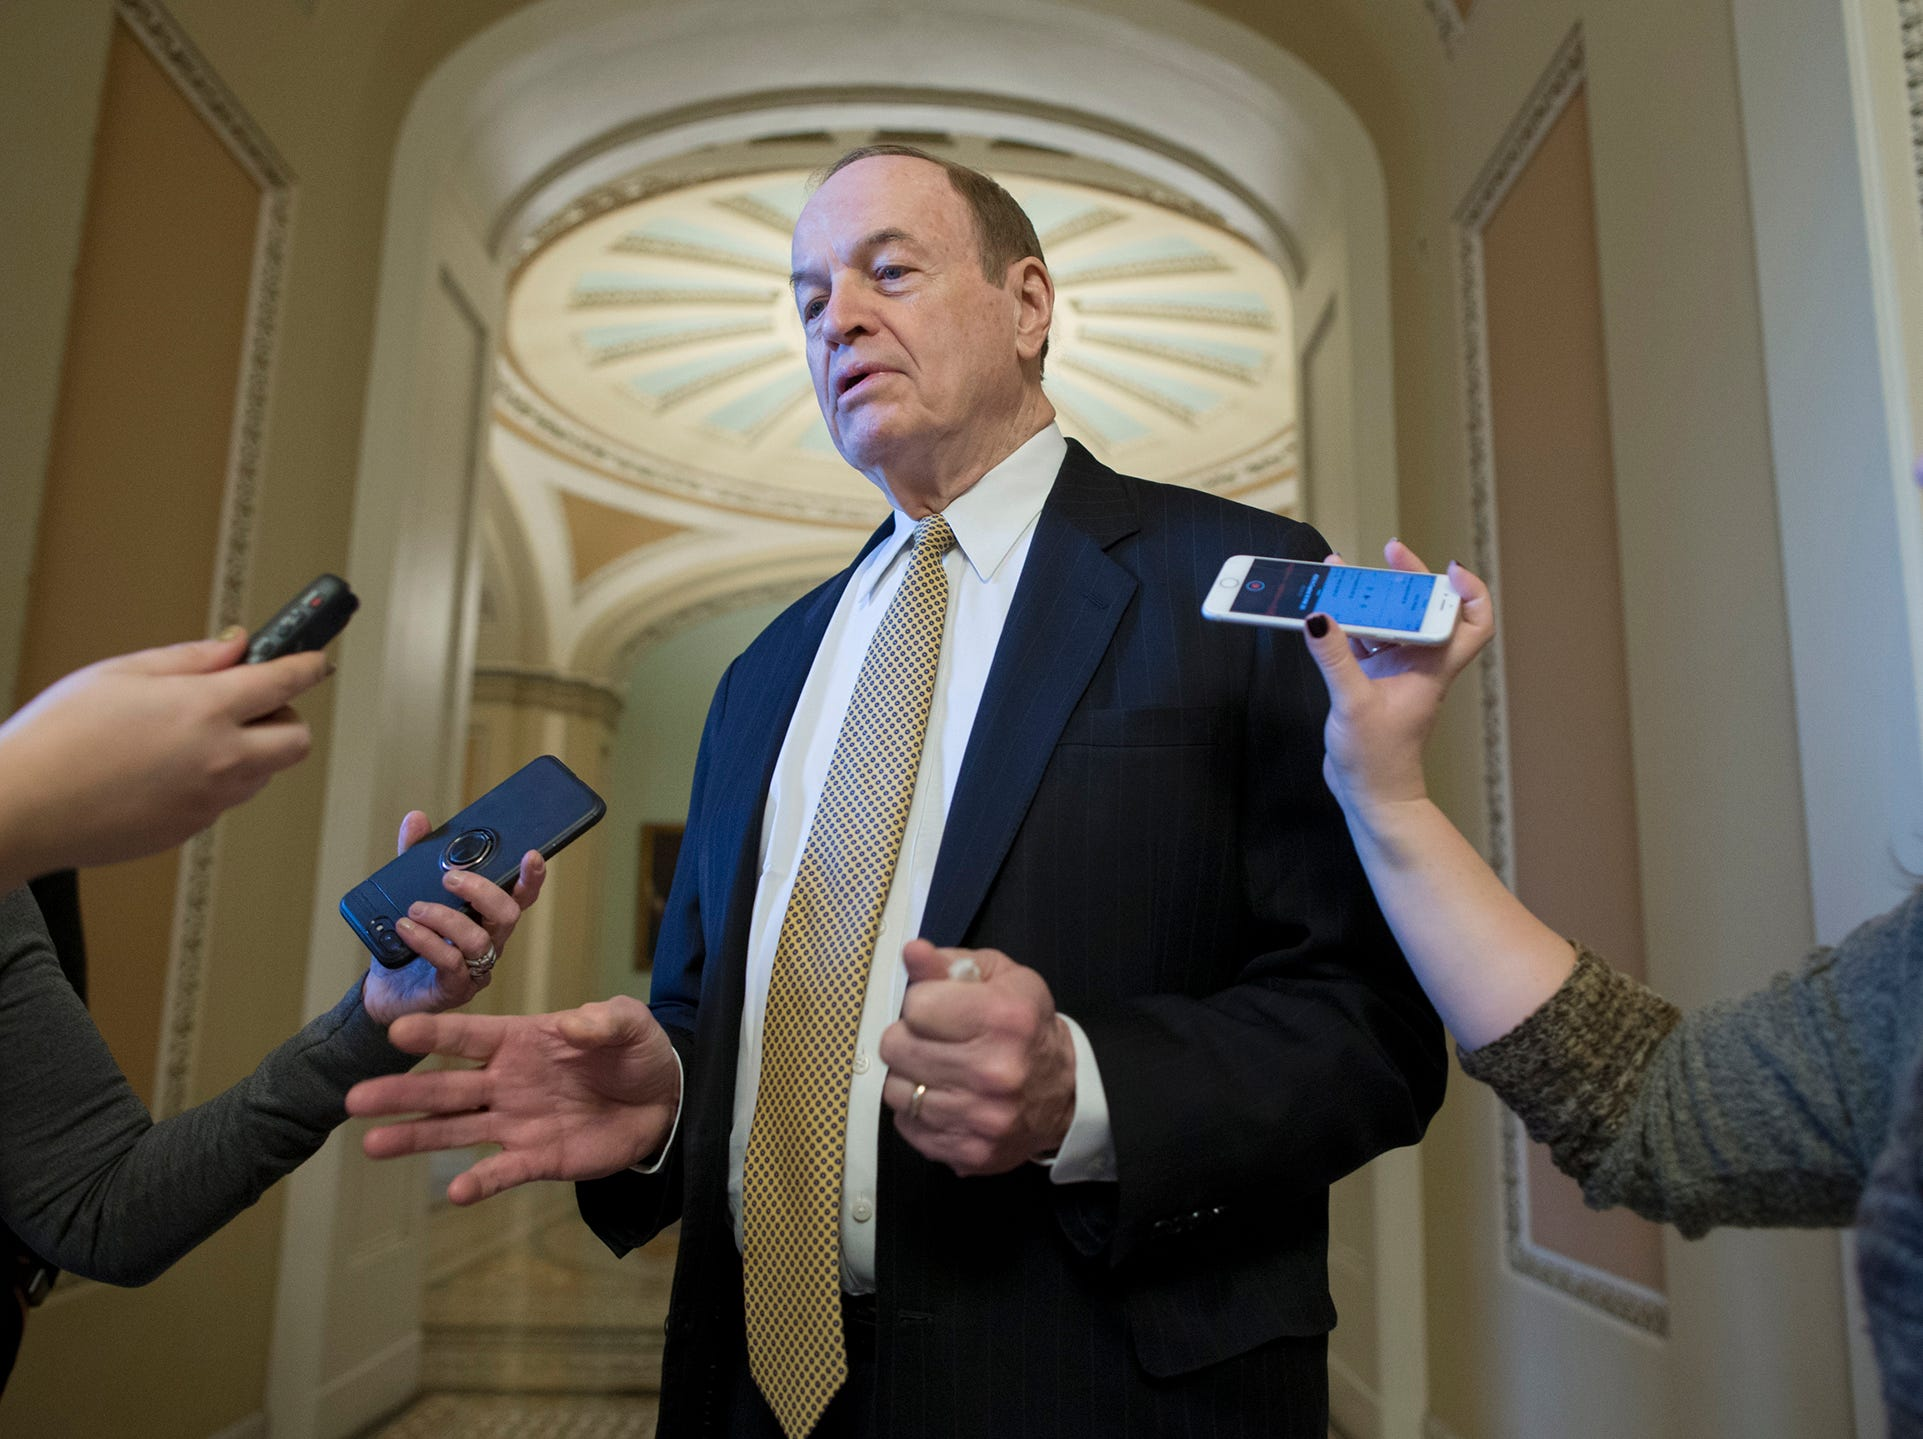 Chairman of the Senate Committee on Appropriations Republican Richard Shelby (C) speaks to members of the news media shortly before leaving to attend a meeting at the White House held by US President Donald J. Trump, on Capitol Hill, Friday. President Trump rejected a continuing resolution to fund the federal government through 08 February 2019, threatening a partial shutdown unless funding is included for his border wall.